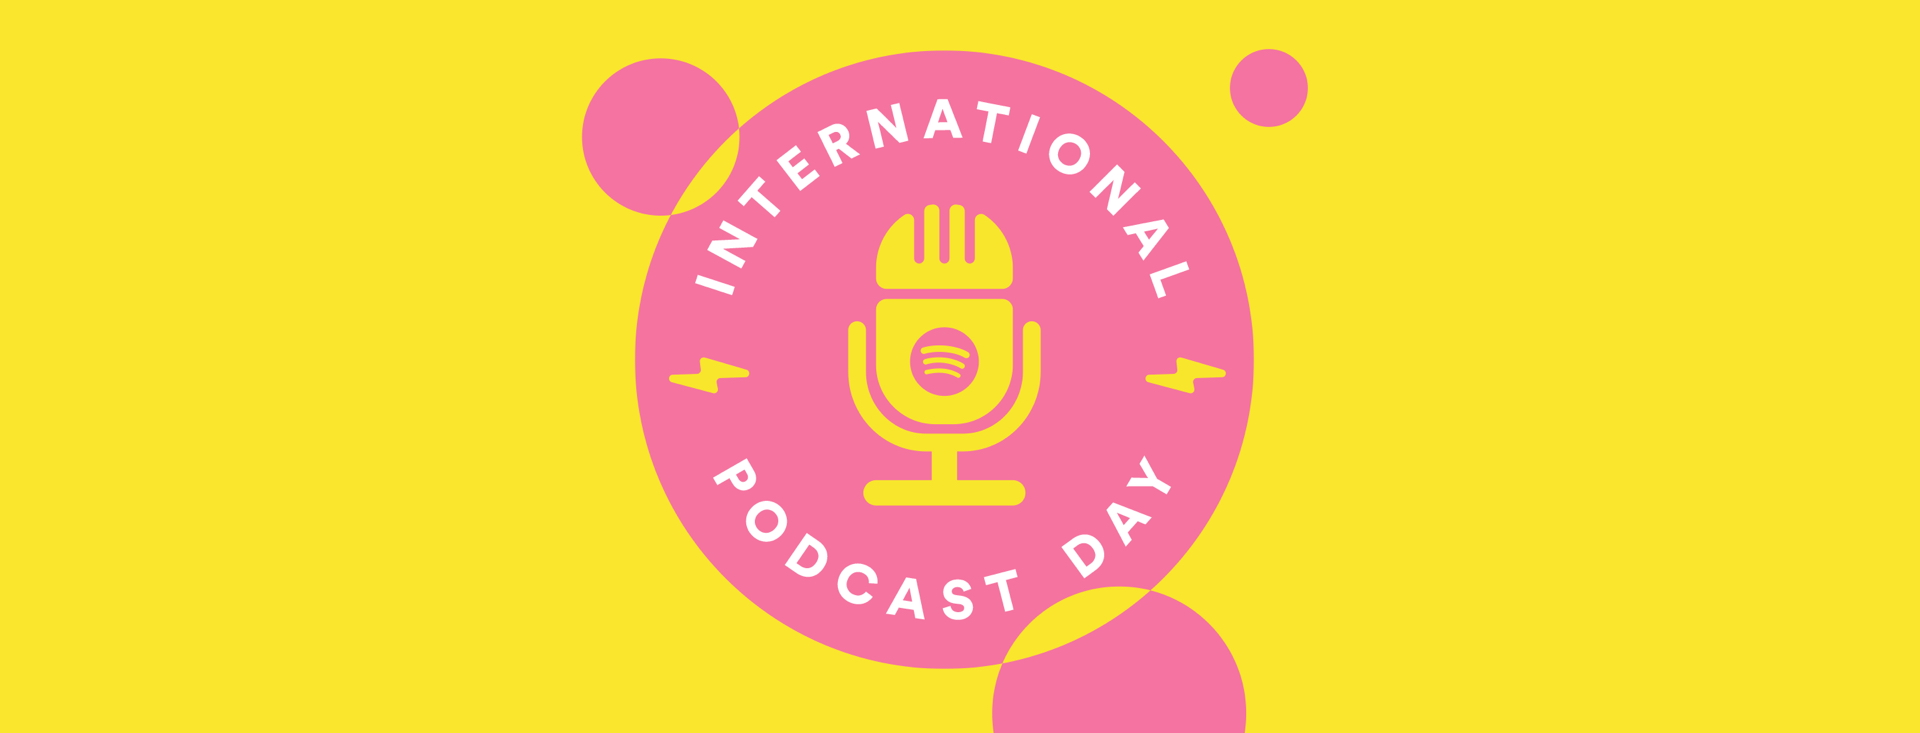 Celebrate Spotify S Biggest Year For Podcasts This International Podcast Day Spotify